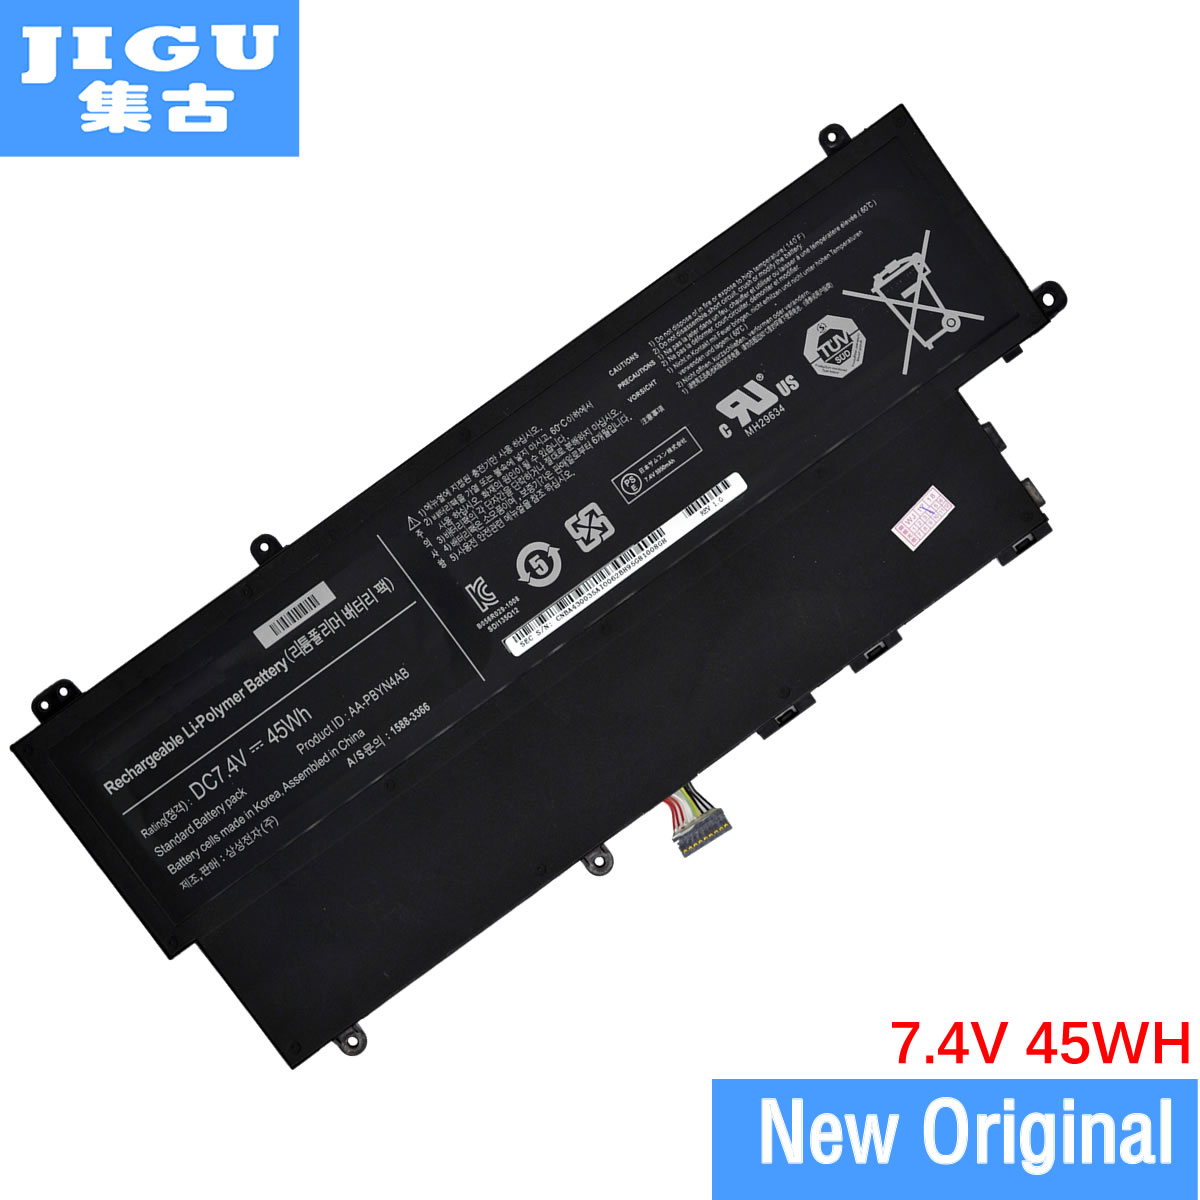 JIGU AA-PBYN4AB Original Laptop Battery For SAMSUNG 530U3 530U3B 530U3C NP530U3C PBYN4AB Batteries 7.4V 45WH jigu aa pbyn4ab original laptop battery for samsung for ultrabook 530u3b 530u3b a01 530u3c 530u3c a02 535u3c np530u3c 7 4v 45wh